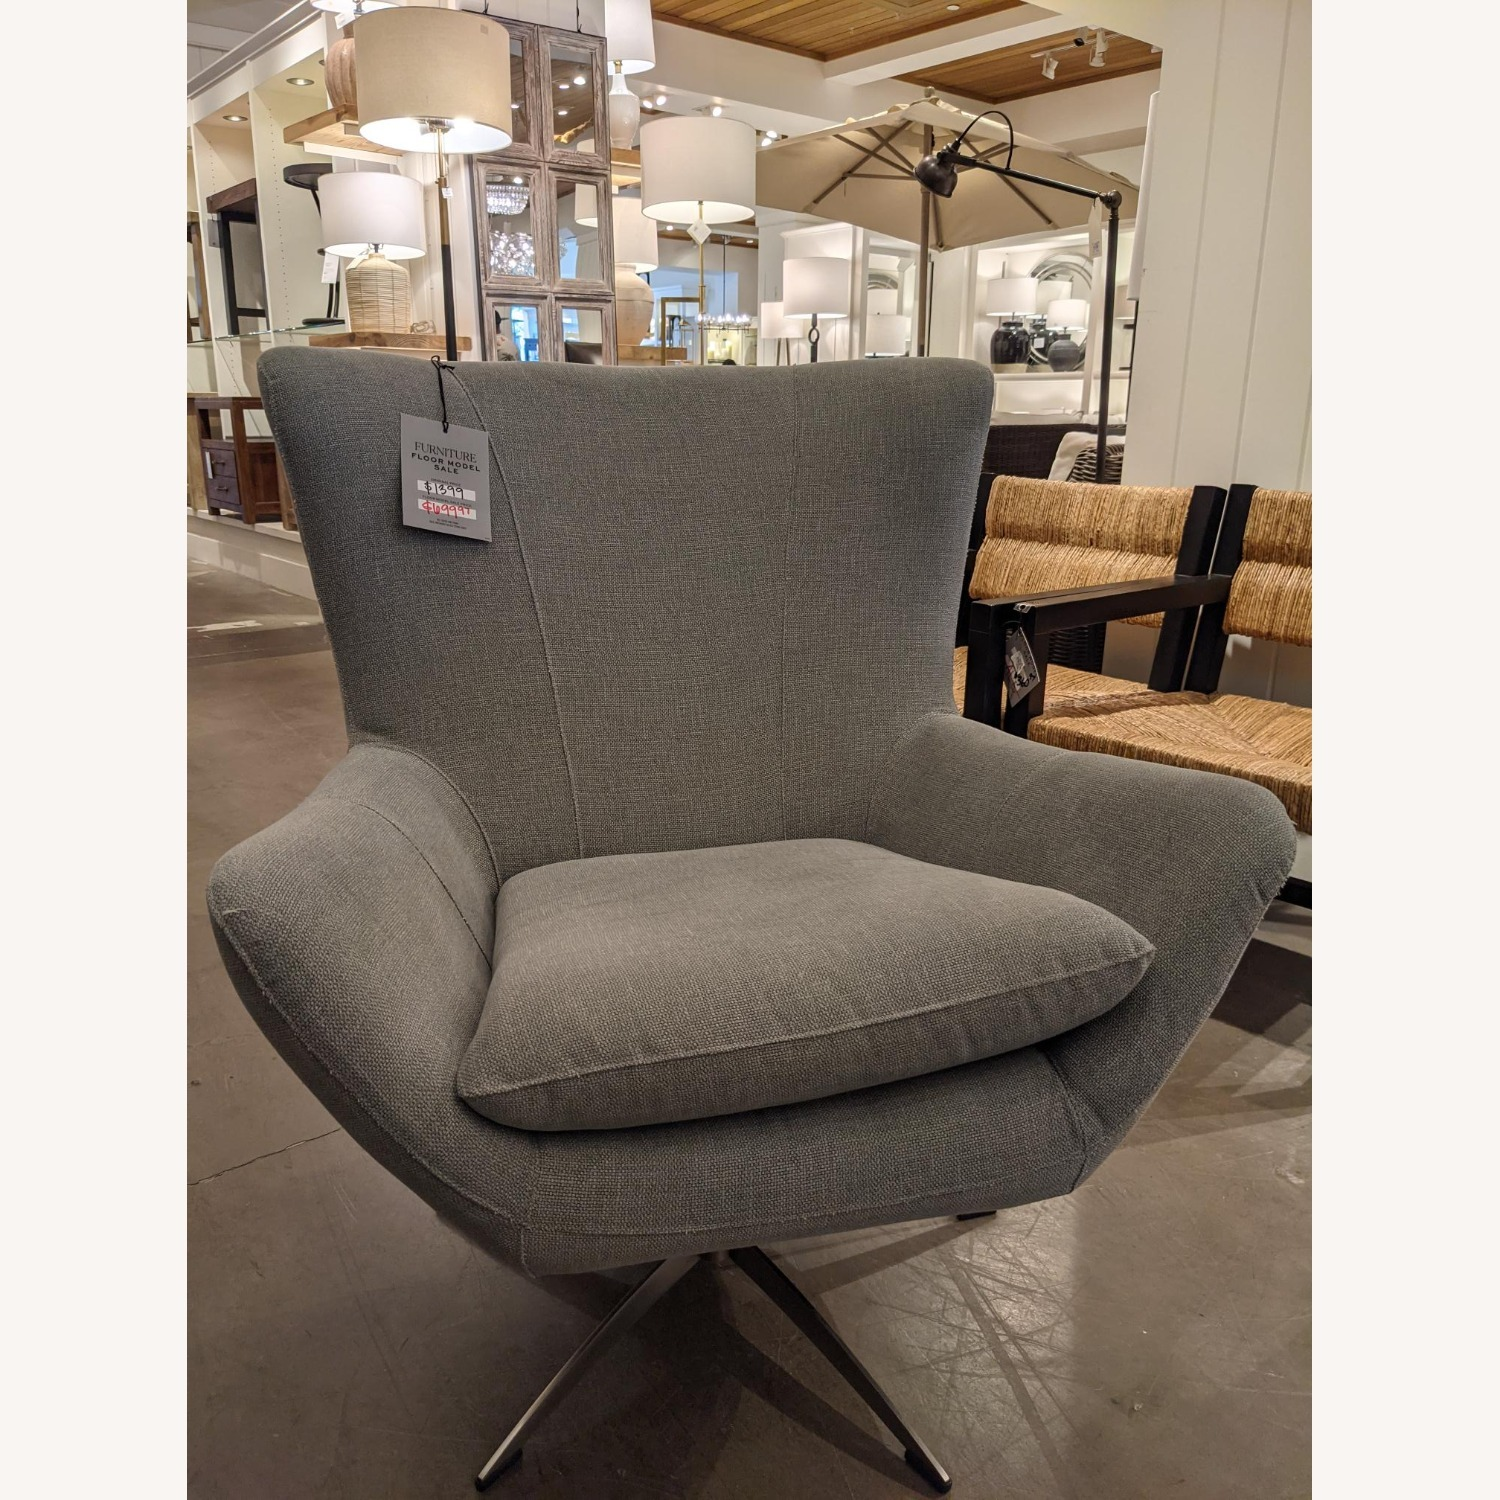 Pottery Barn Wells Tight Back Petite Armchair - image-2